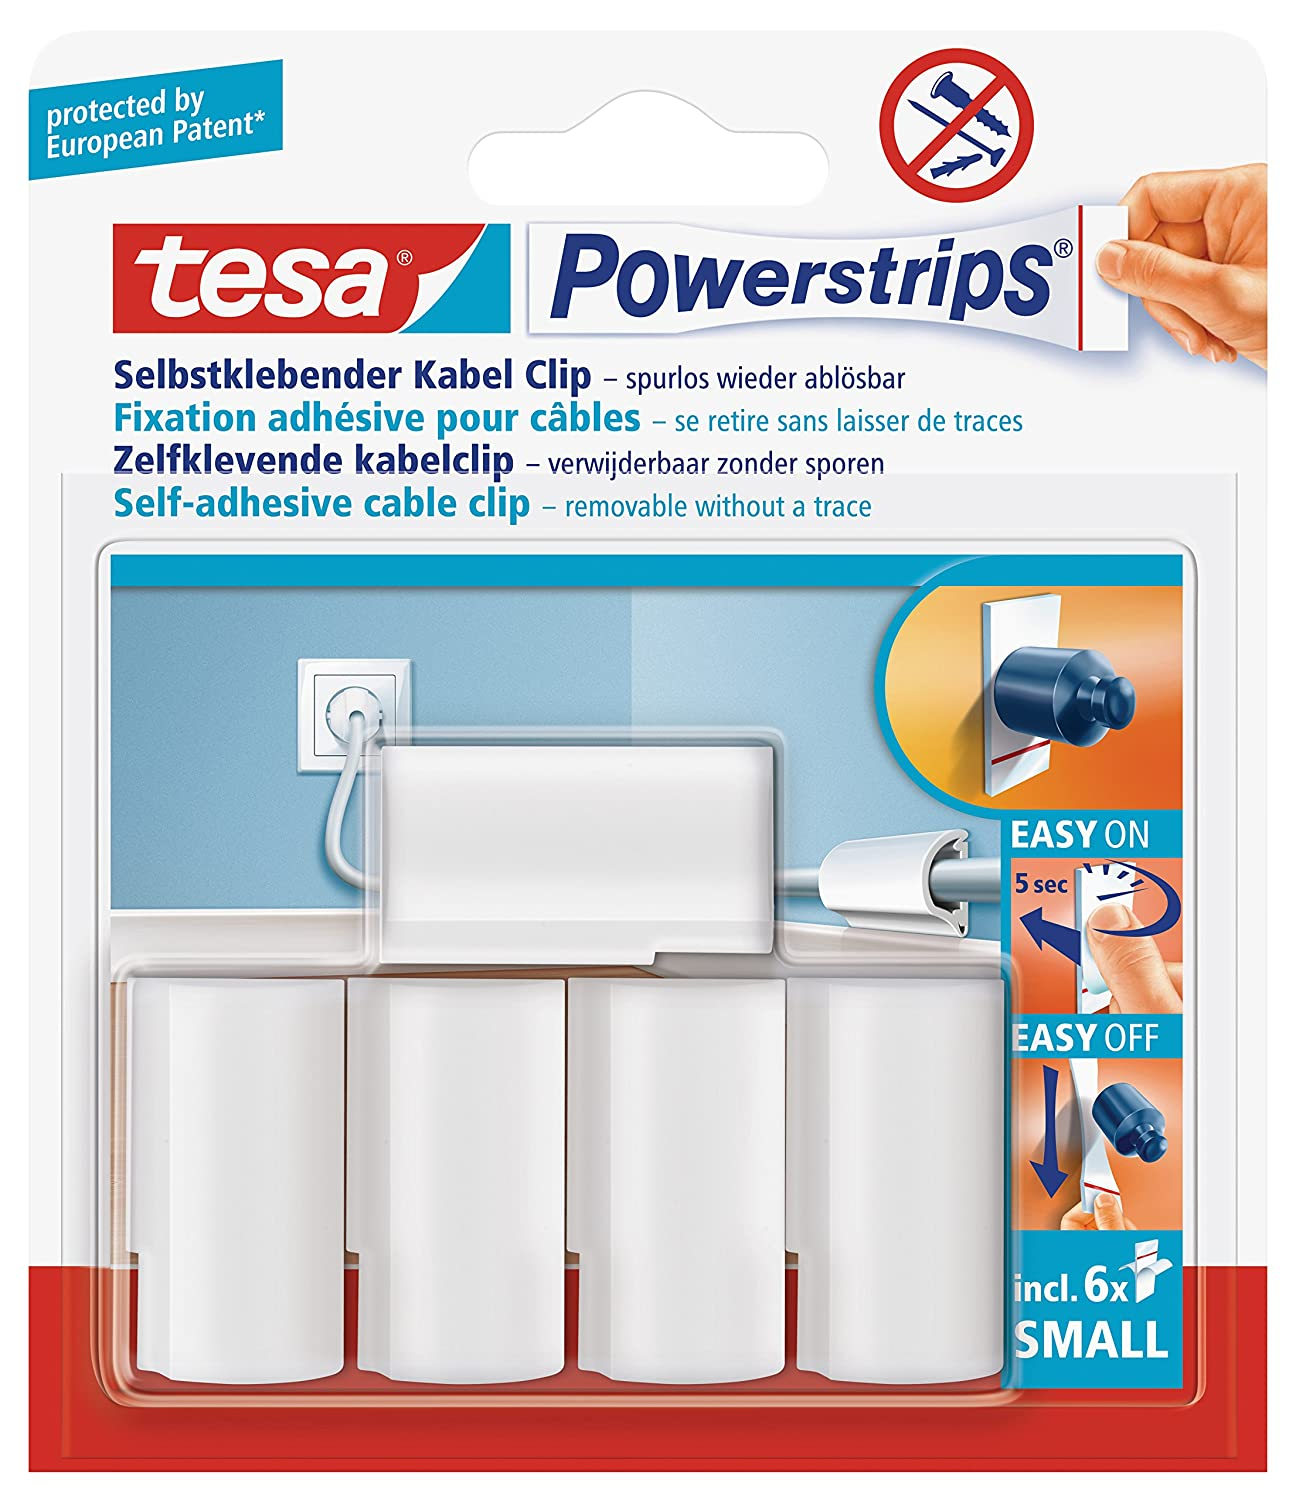 Hervorragend tesa UK Powerstrips Cable-Clip with Removable Adhesive Strips - 5  AE89